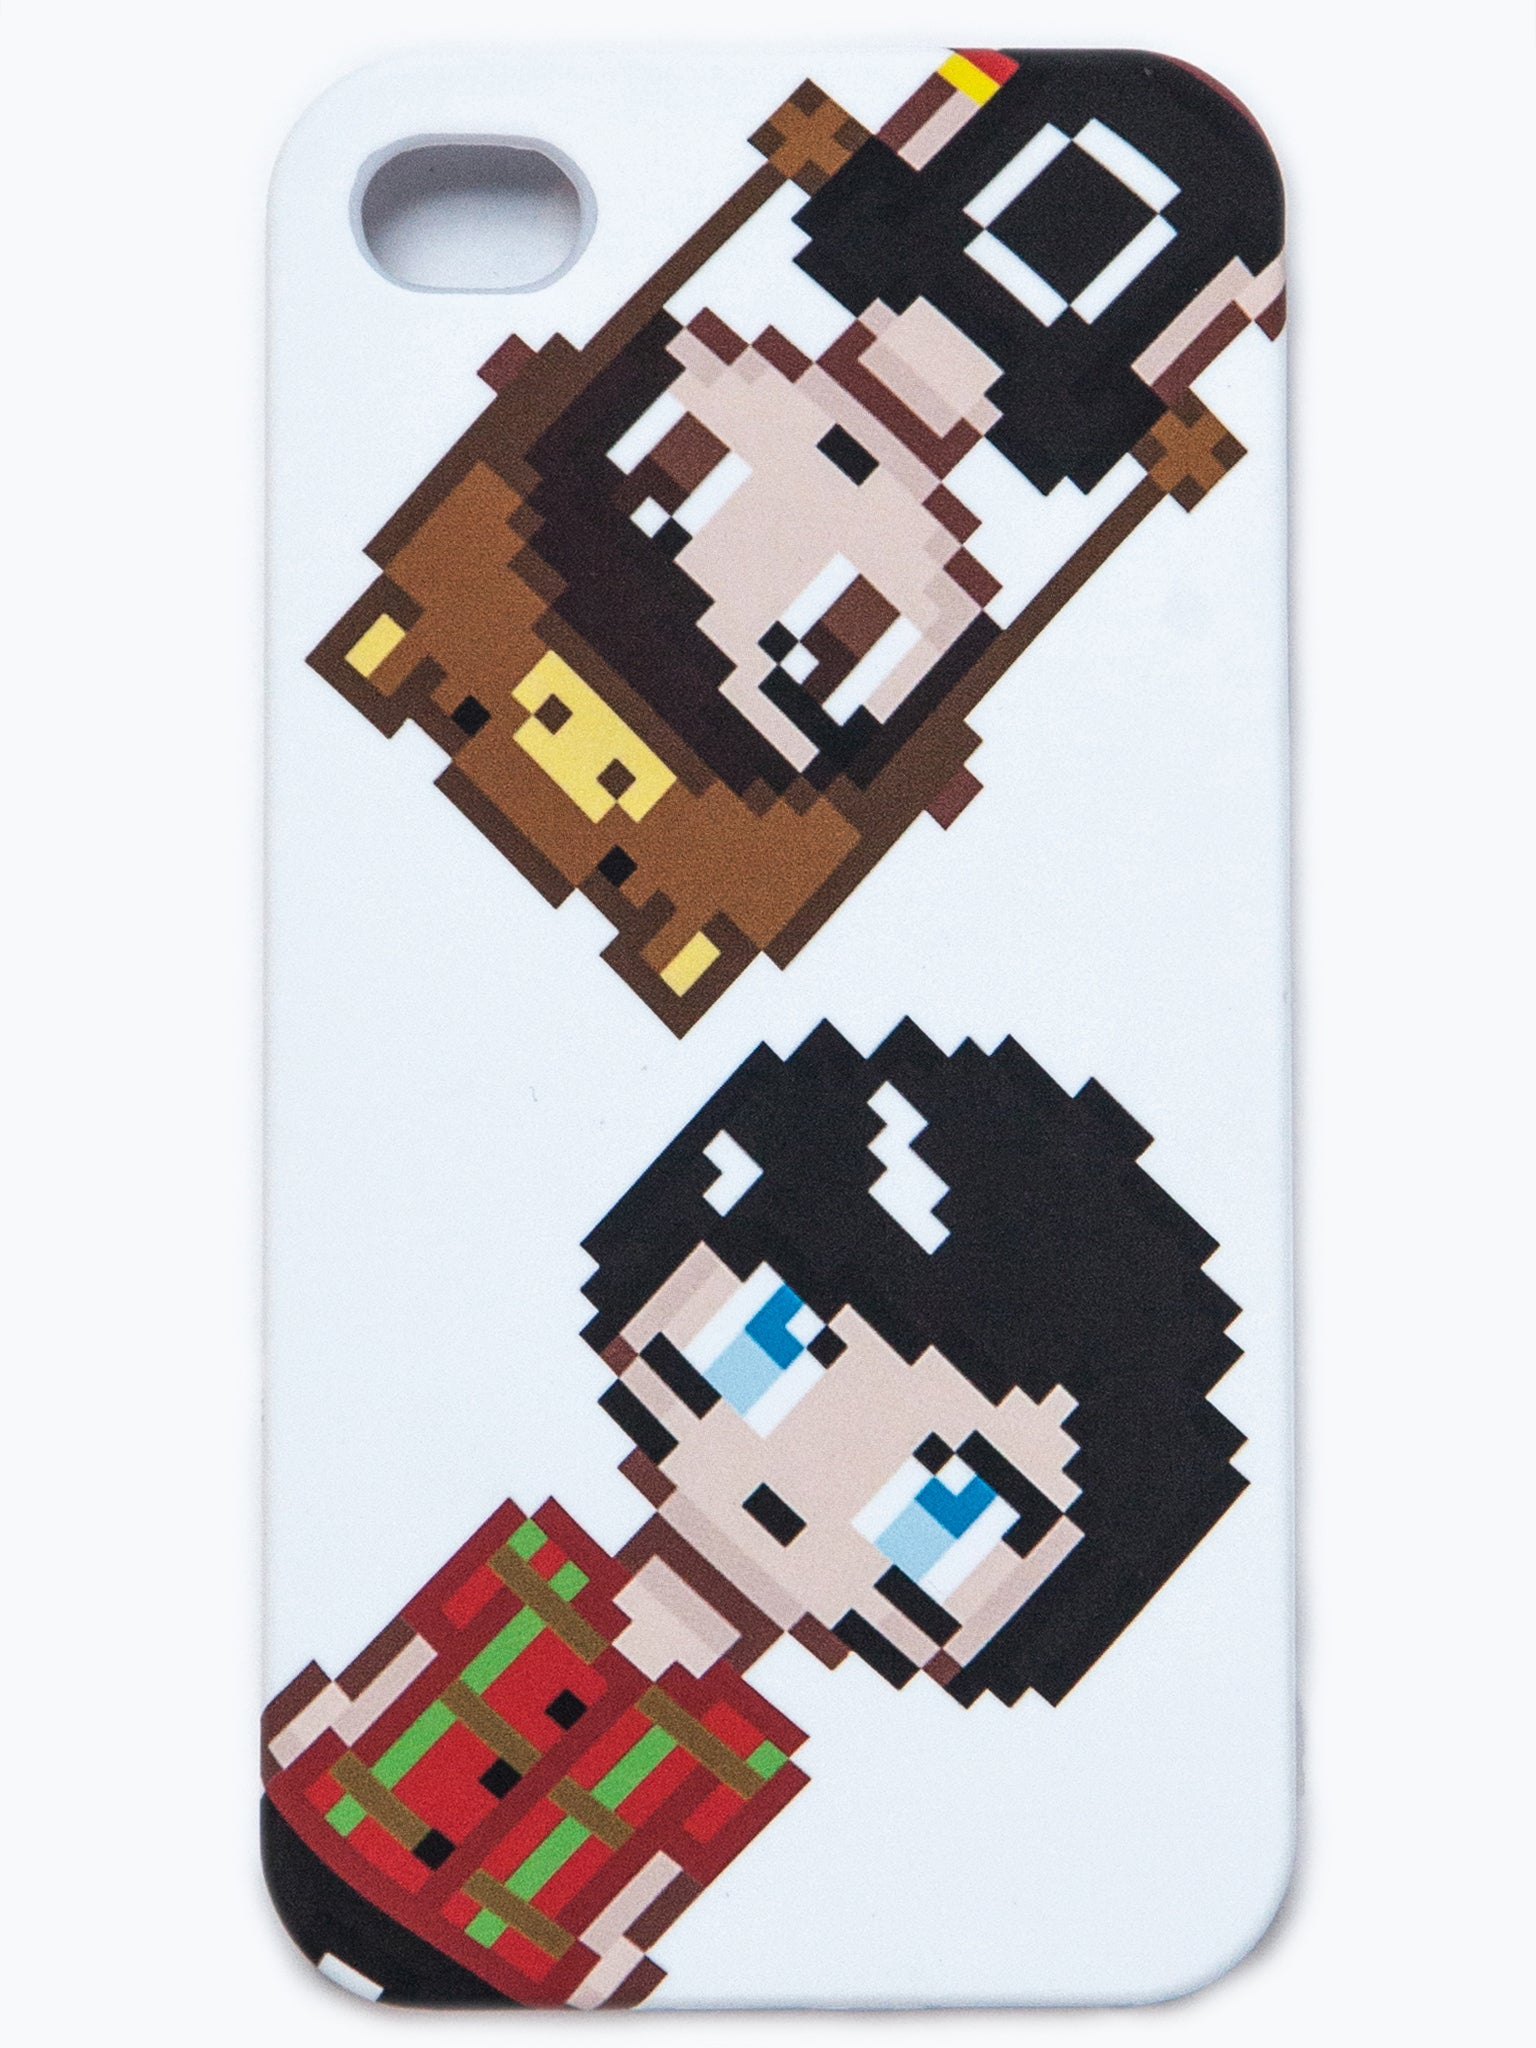 Pixel iPhone Case